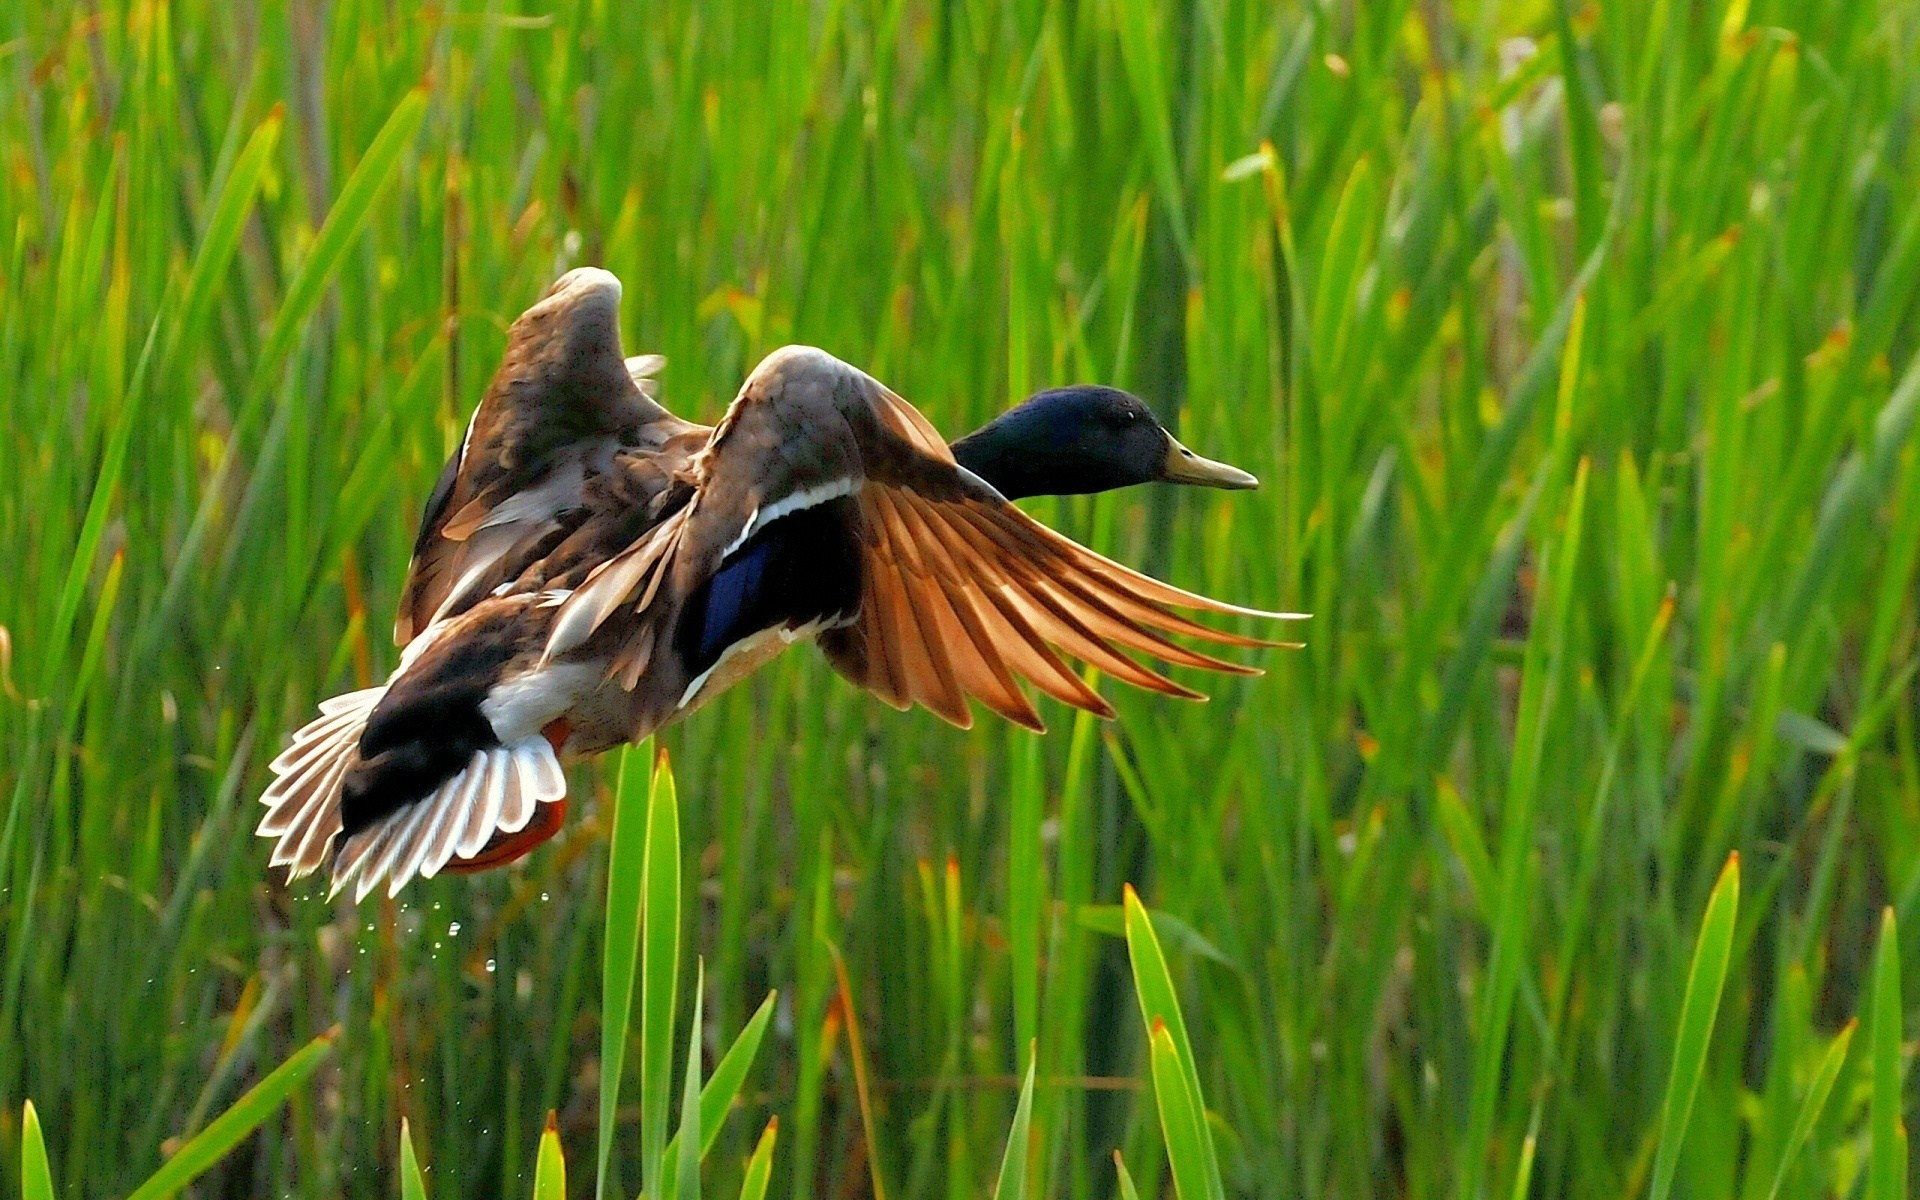 Wild Duck Flying Lake Nature HD Wallpaper